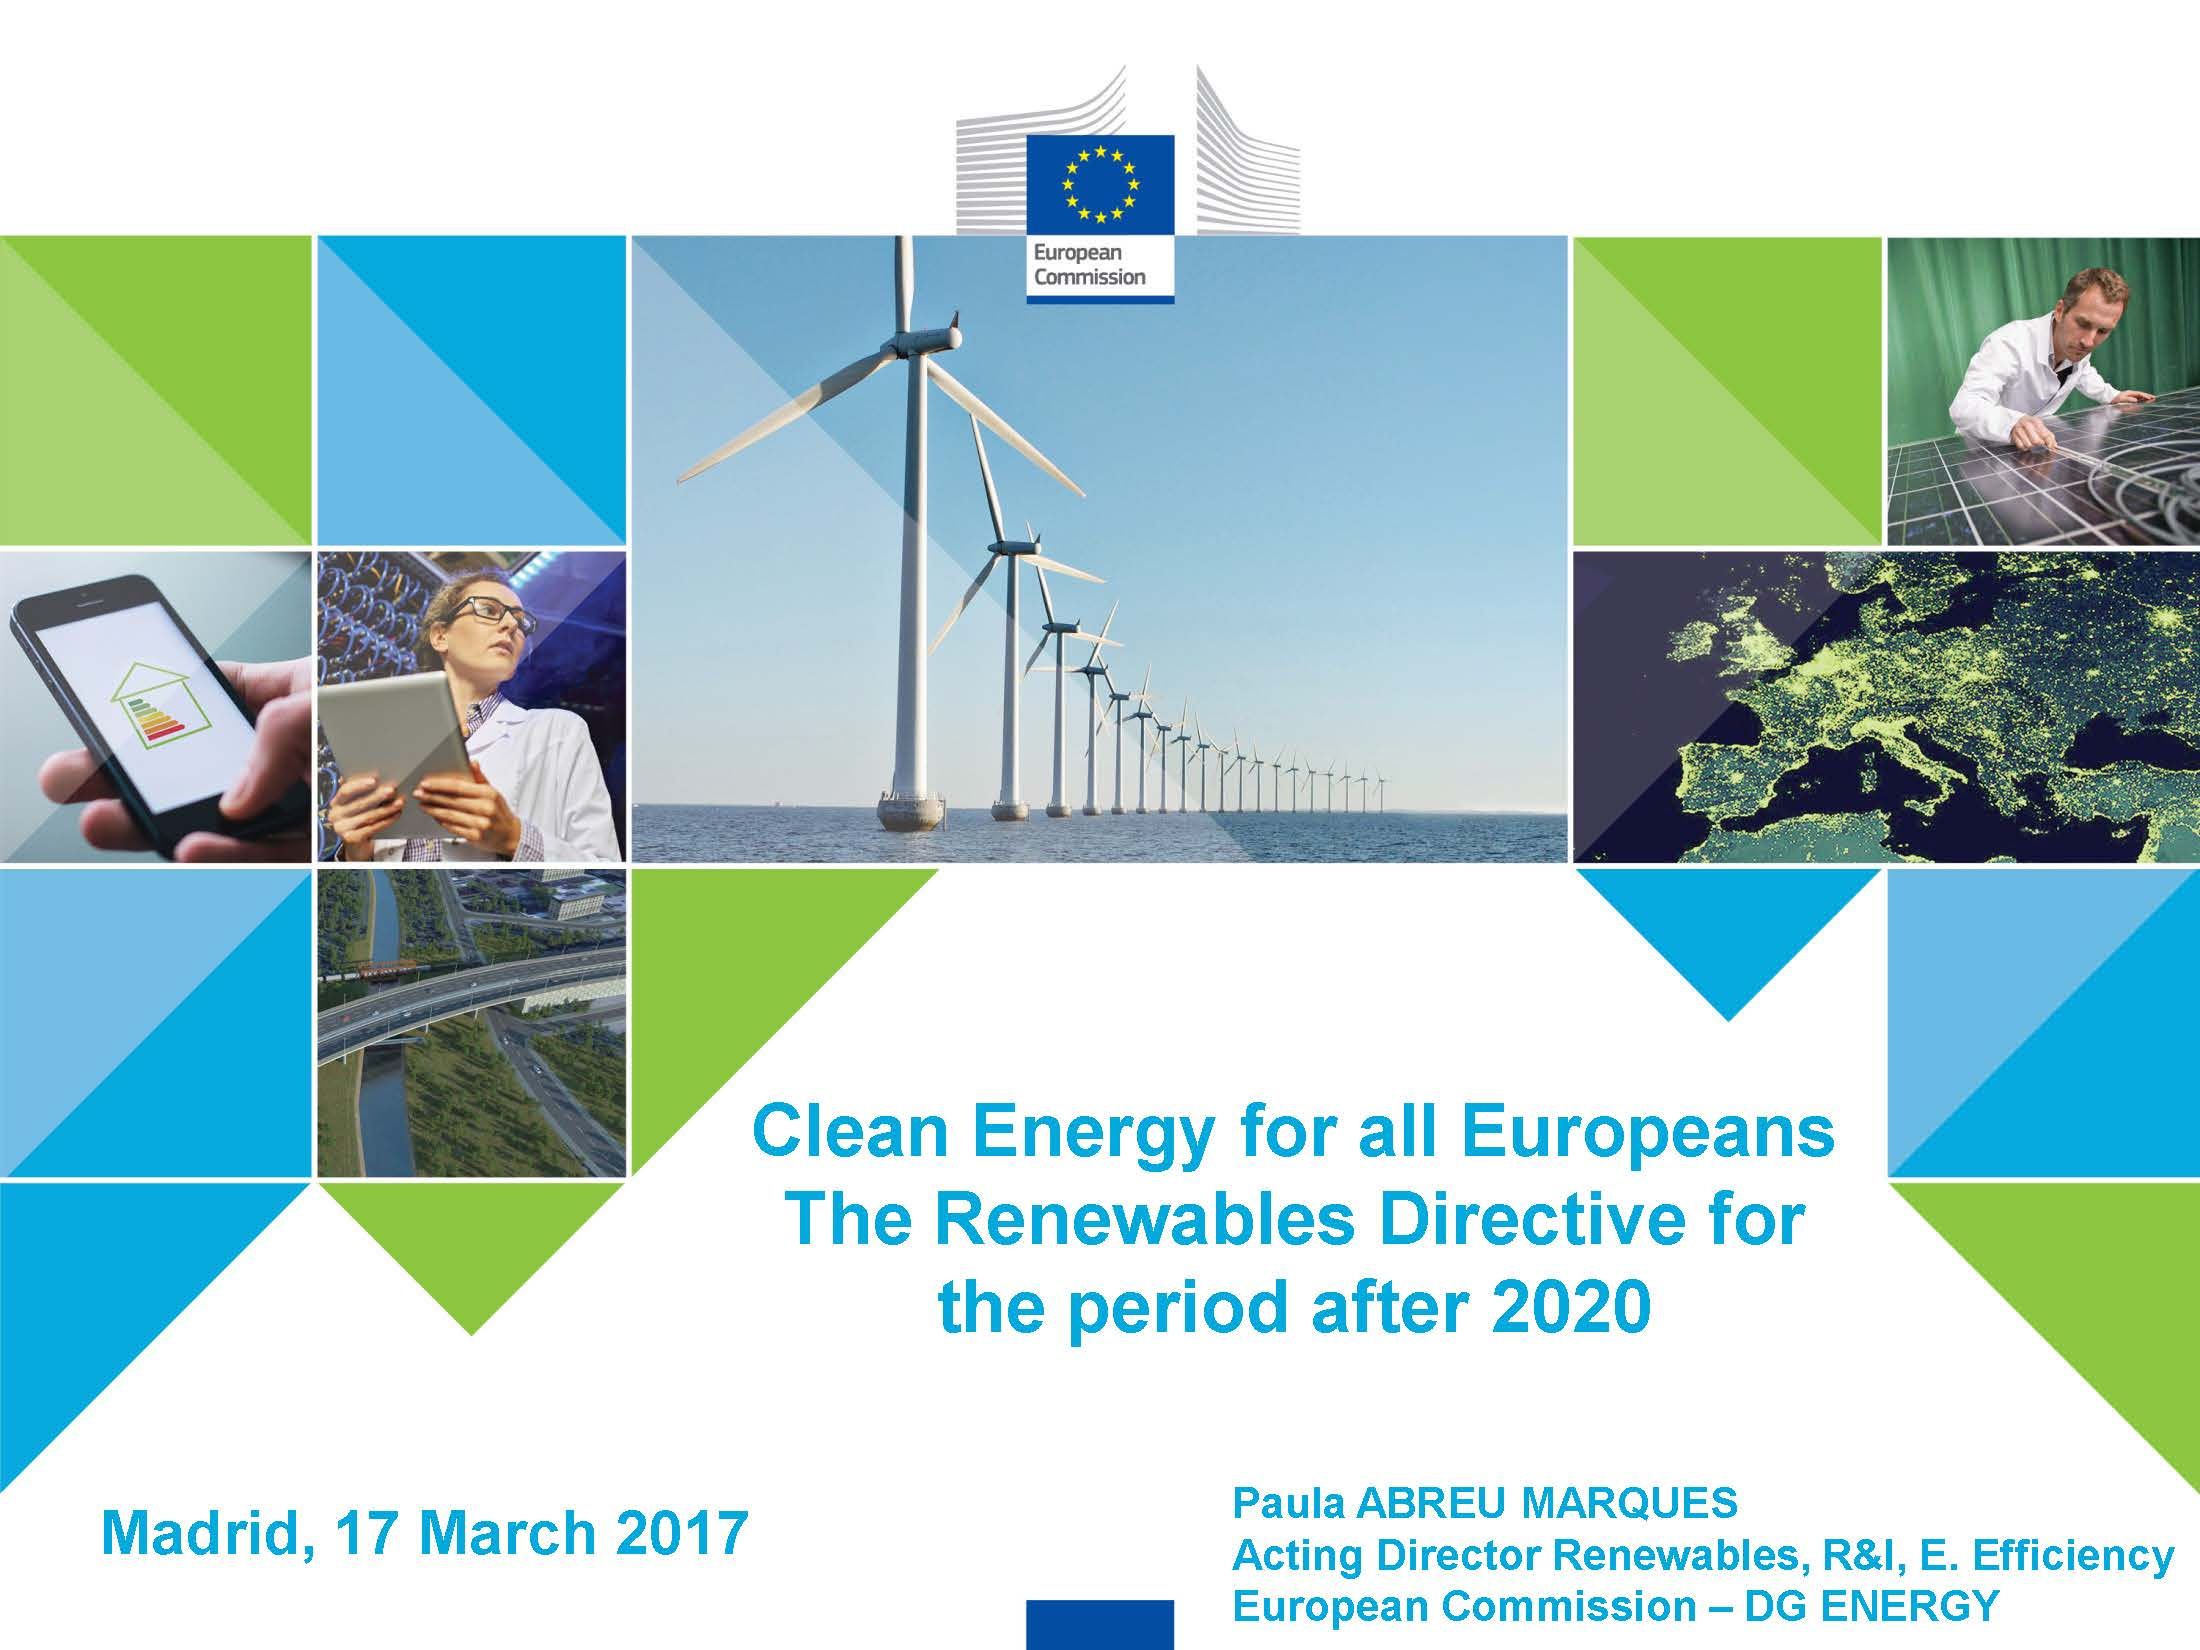 Clean Energy for all Europeans. The Renewables Directive for the period after 2020